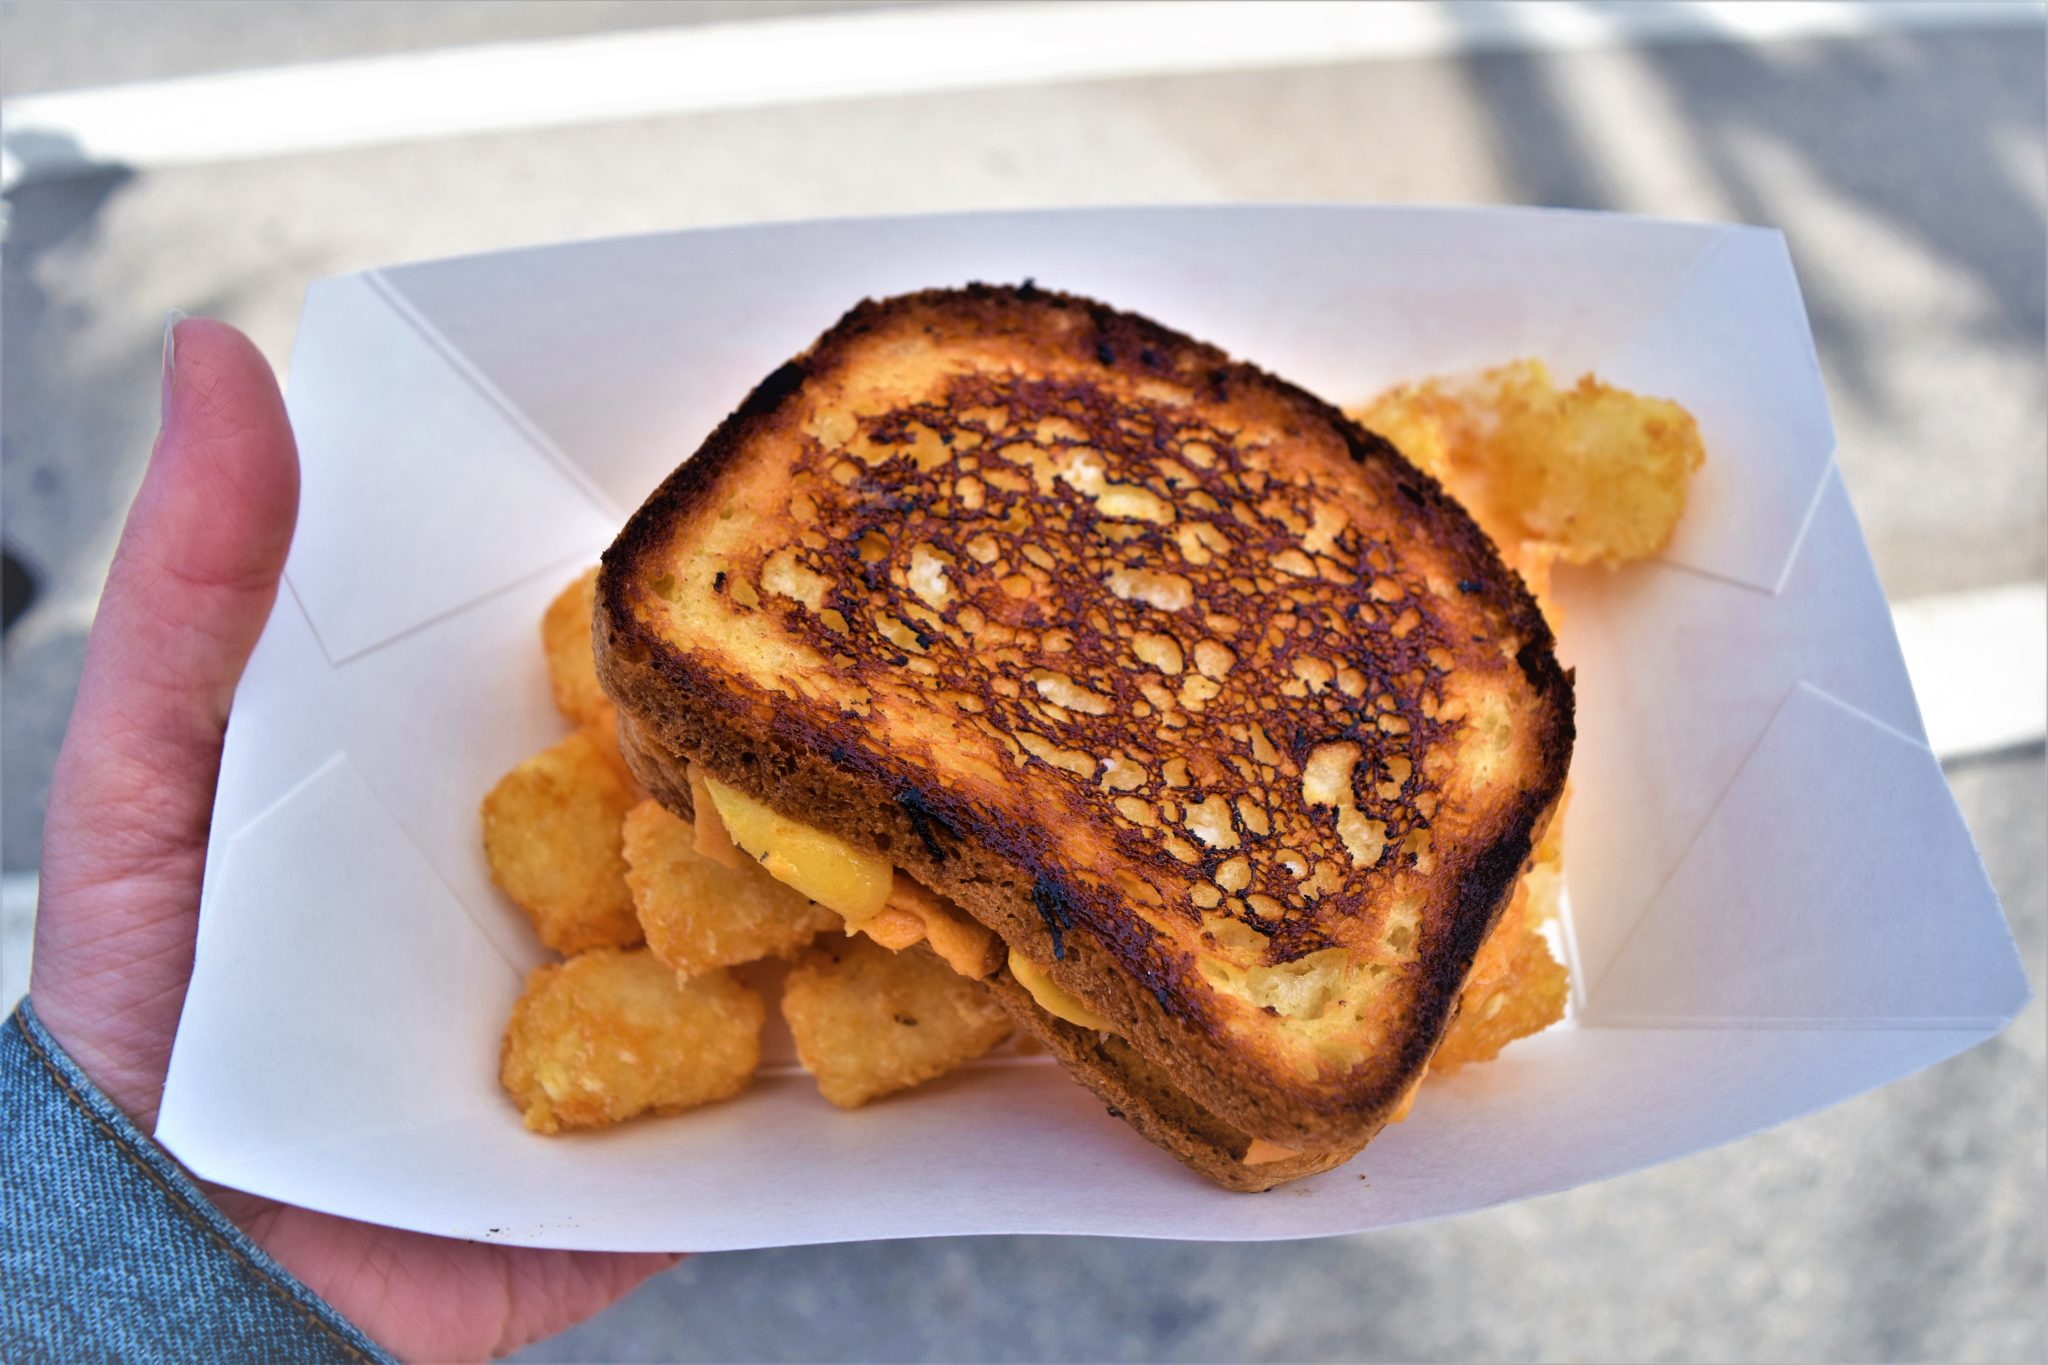 Vegan Grilled cheese, van at Los angeles vegan street fair, California